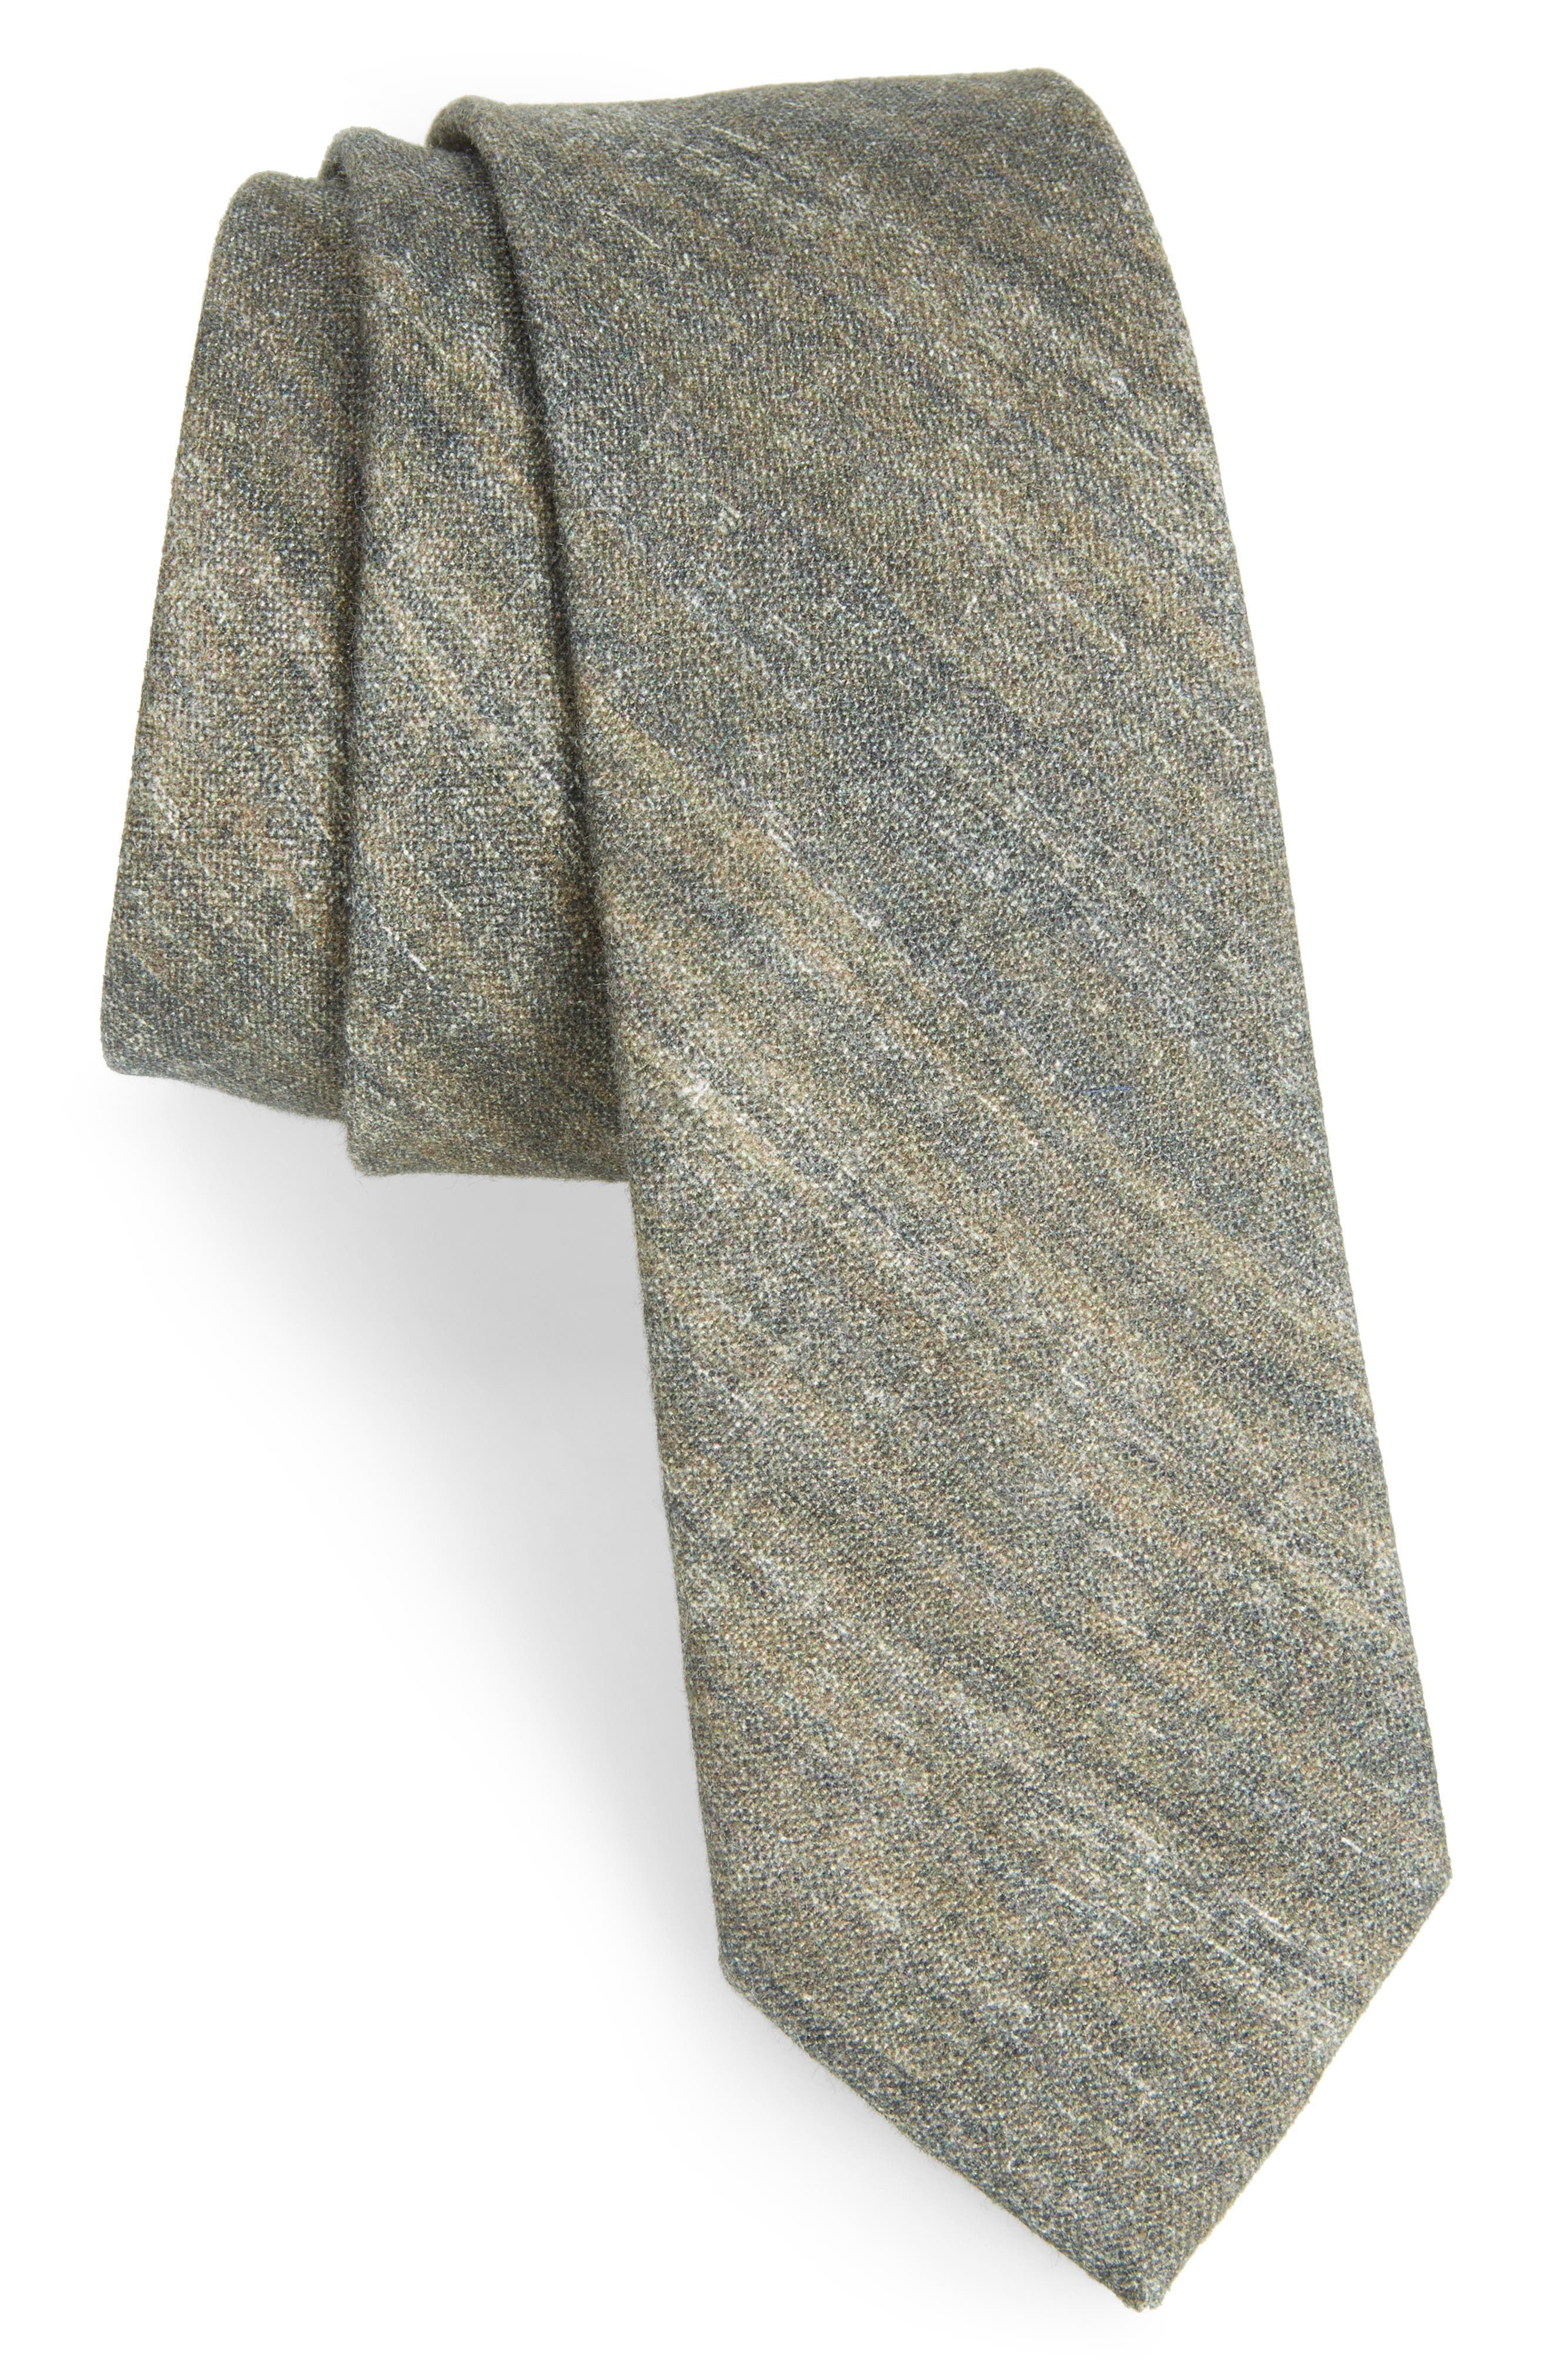 Freehand Solid Linen Tie,                             Main thumbnail 1, color,                             Taupe